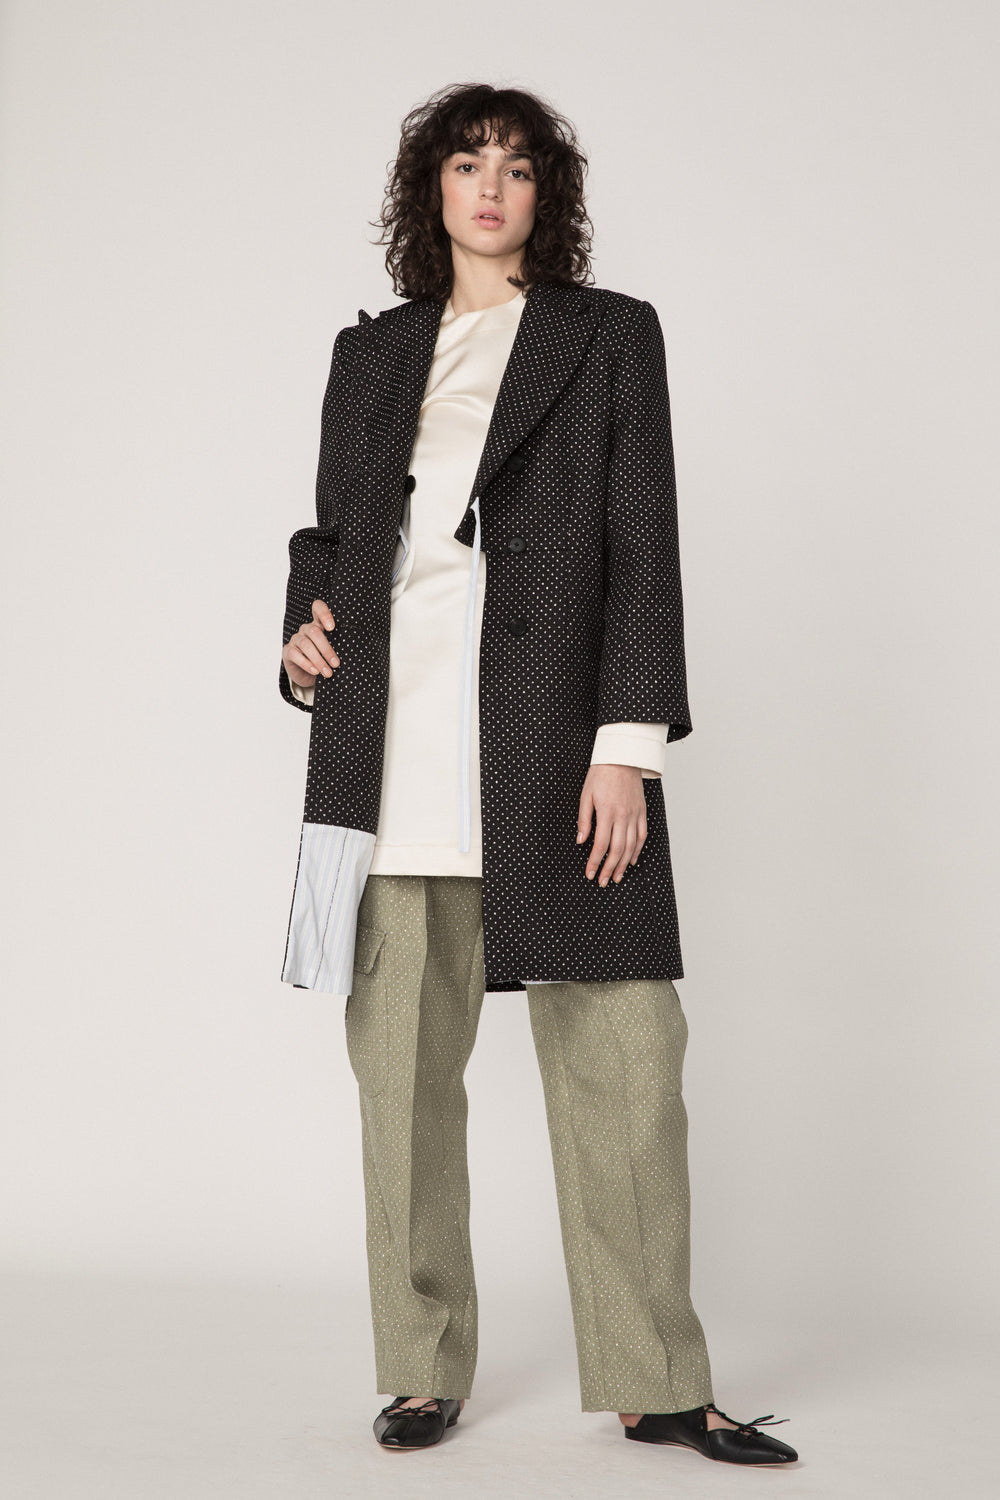 Rosie Assoulin Fall 2019 Classic Car Coat. Utilitarian double-breasted woven coat. Notched label. 3-button closure. Black. 66% Polyester, 34% Cotton. Sizes 0 - 12.